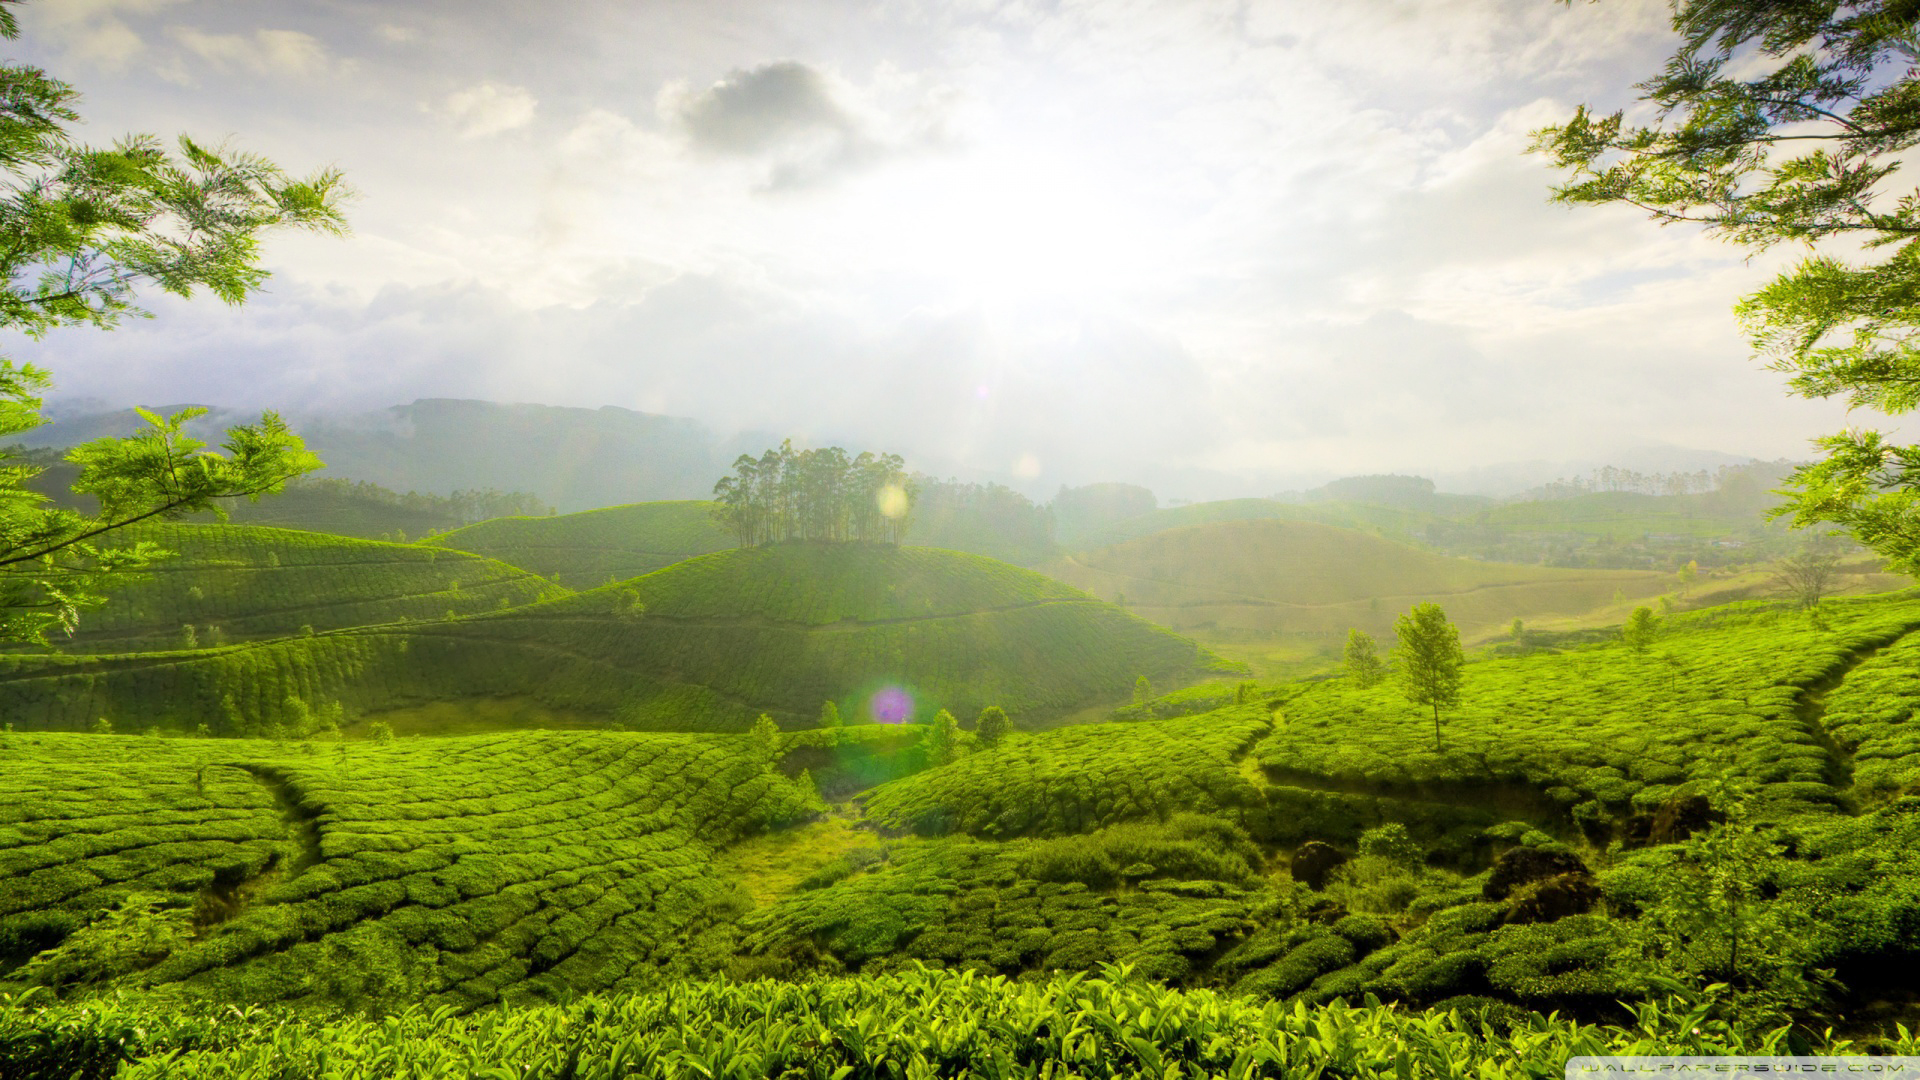 munnar_hill_india-wallpaper-1920x1080